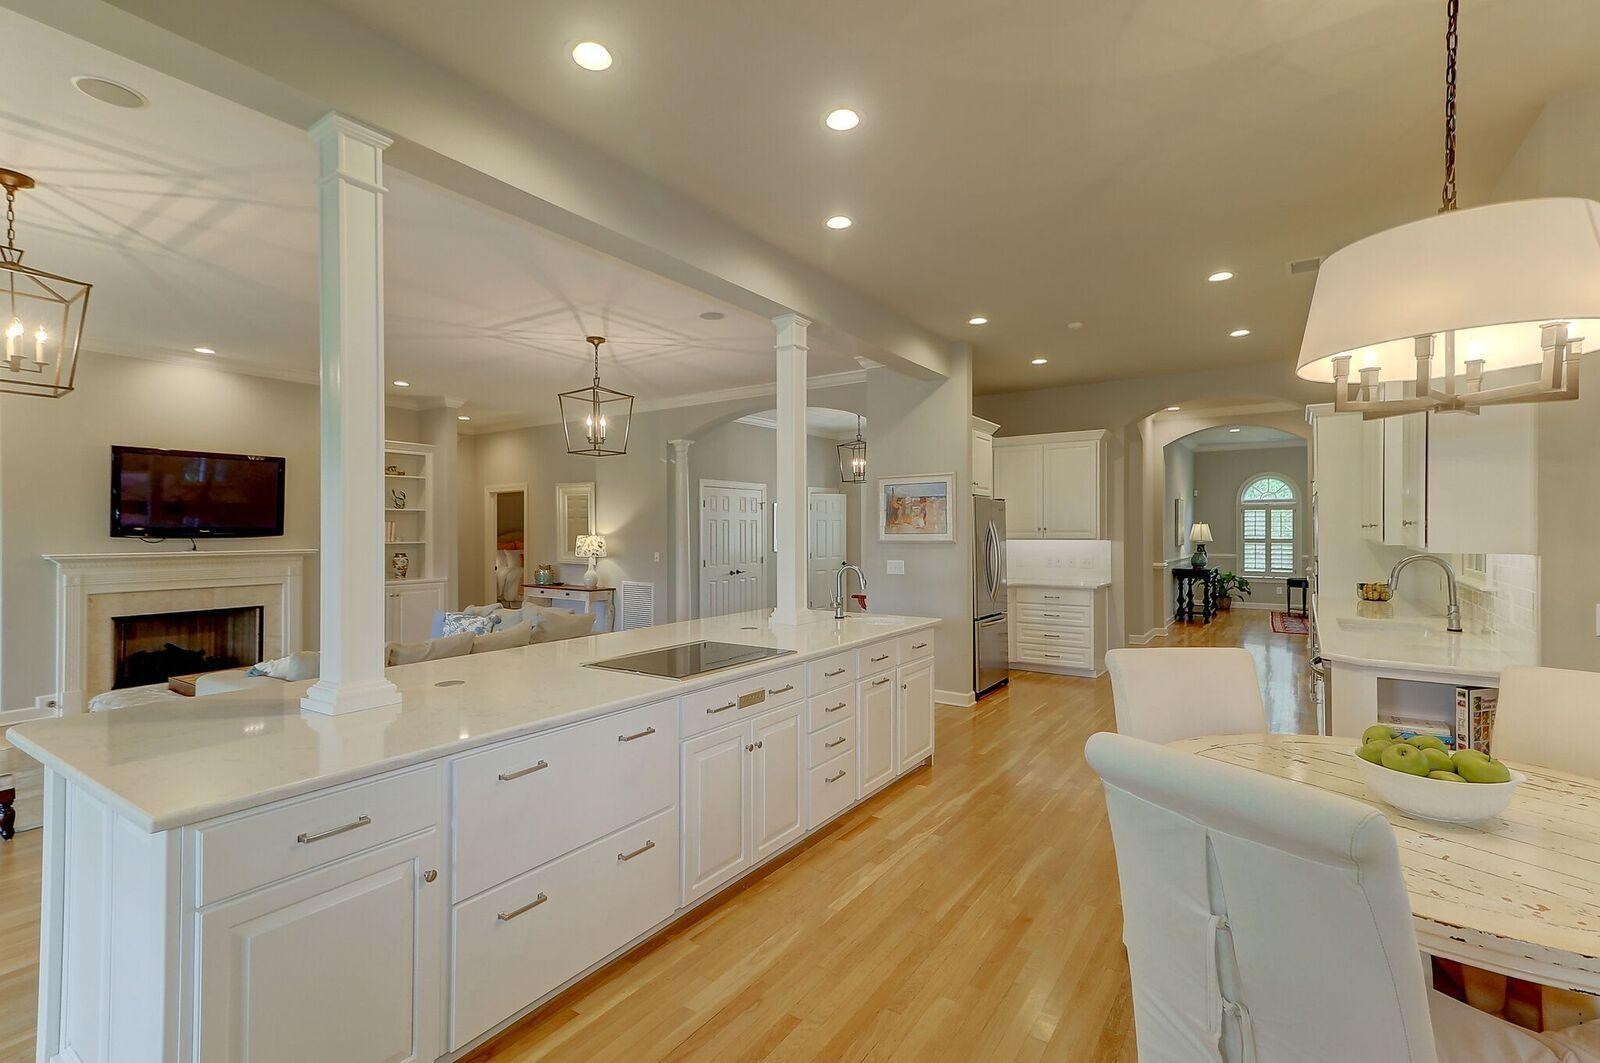 Wild Dunes Homes For Sale - 60 Seagrass, Isle of Palms, SC - 23